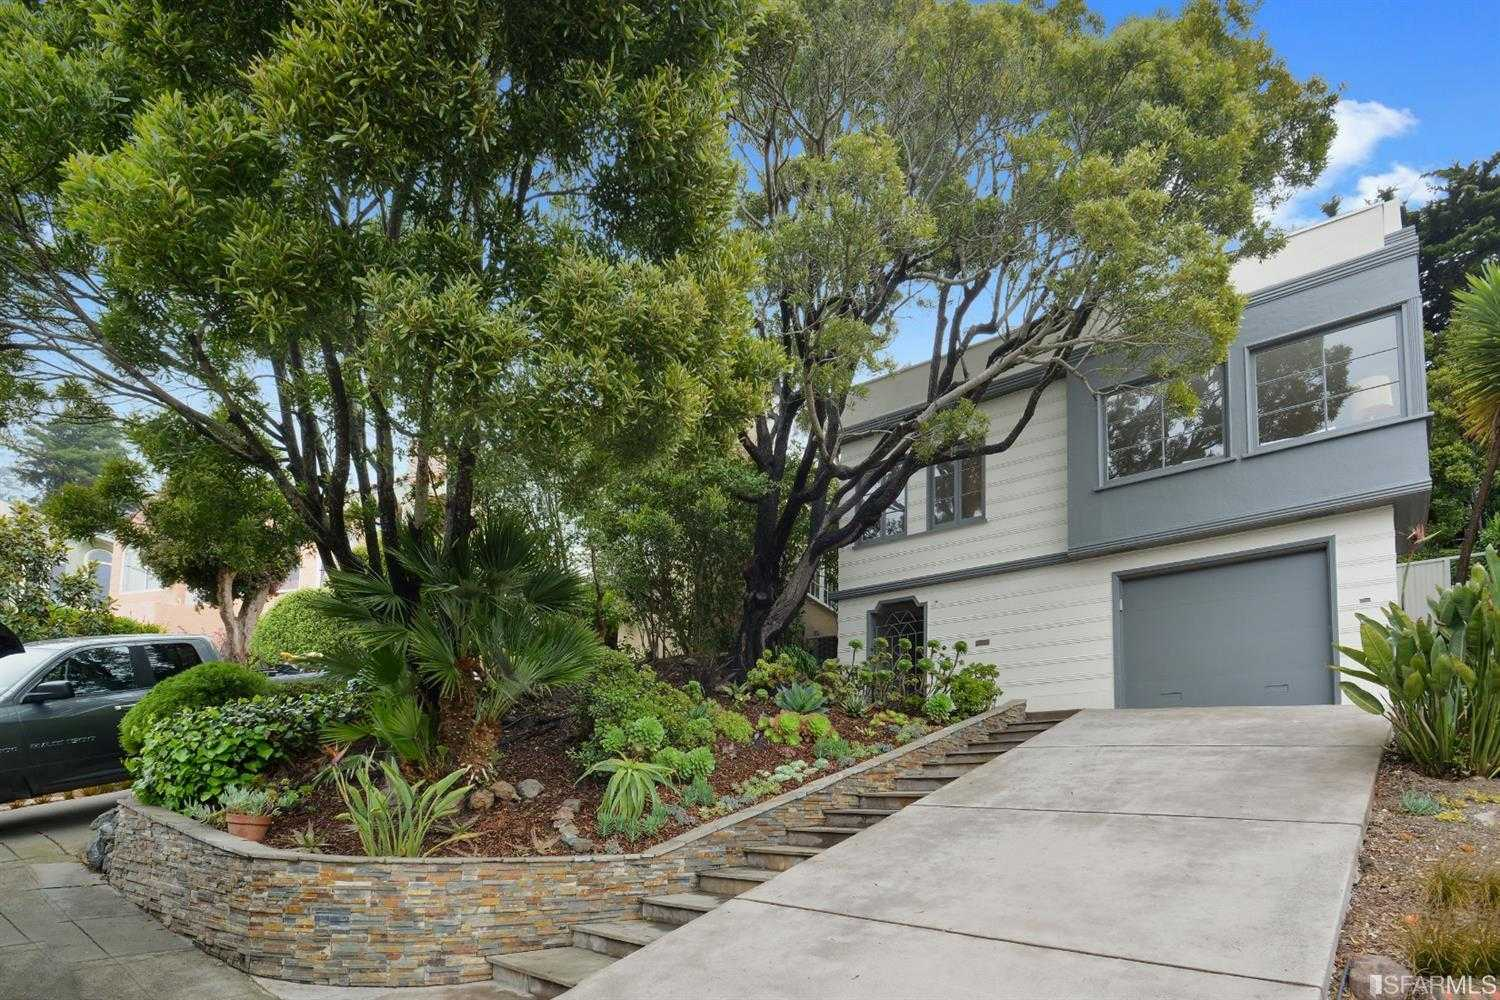 40 Brentwood Ave San Francisco, CA 94127